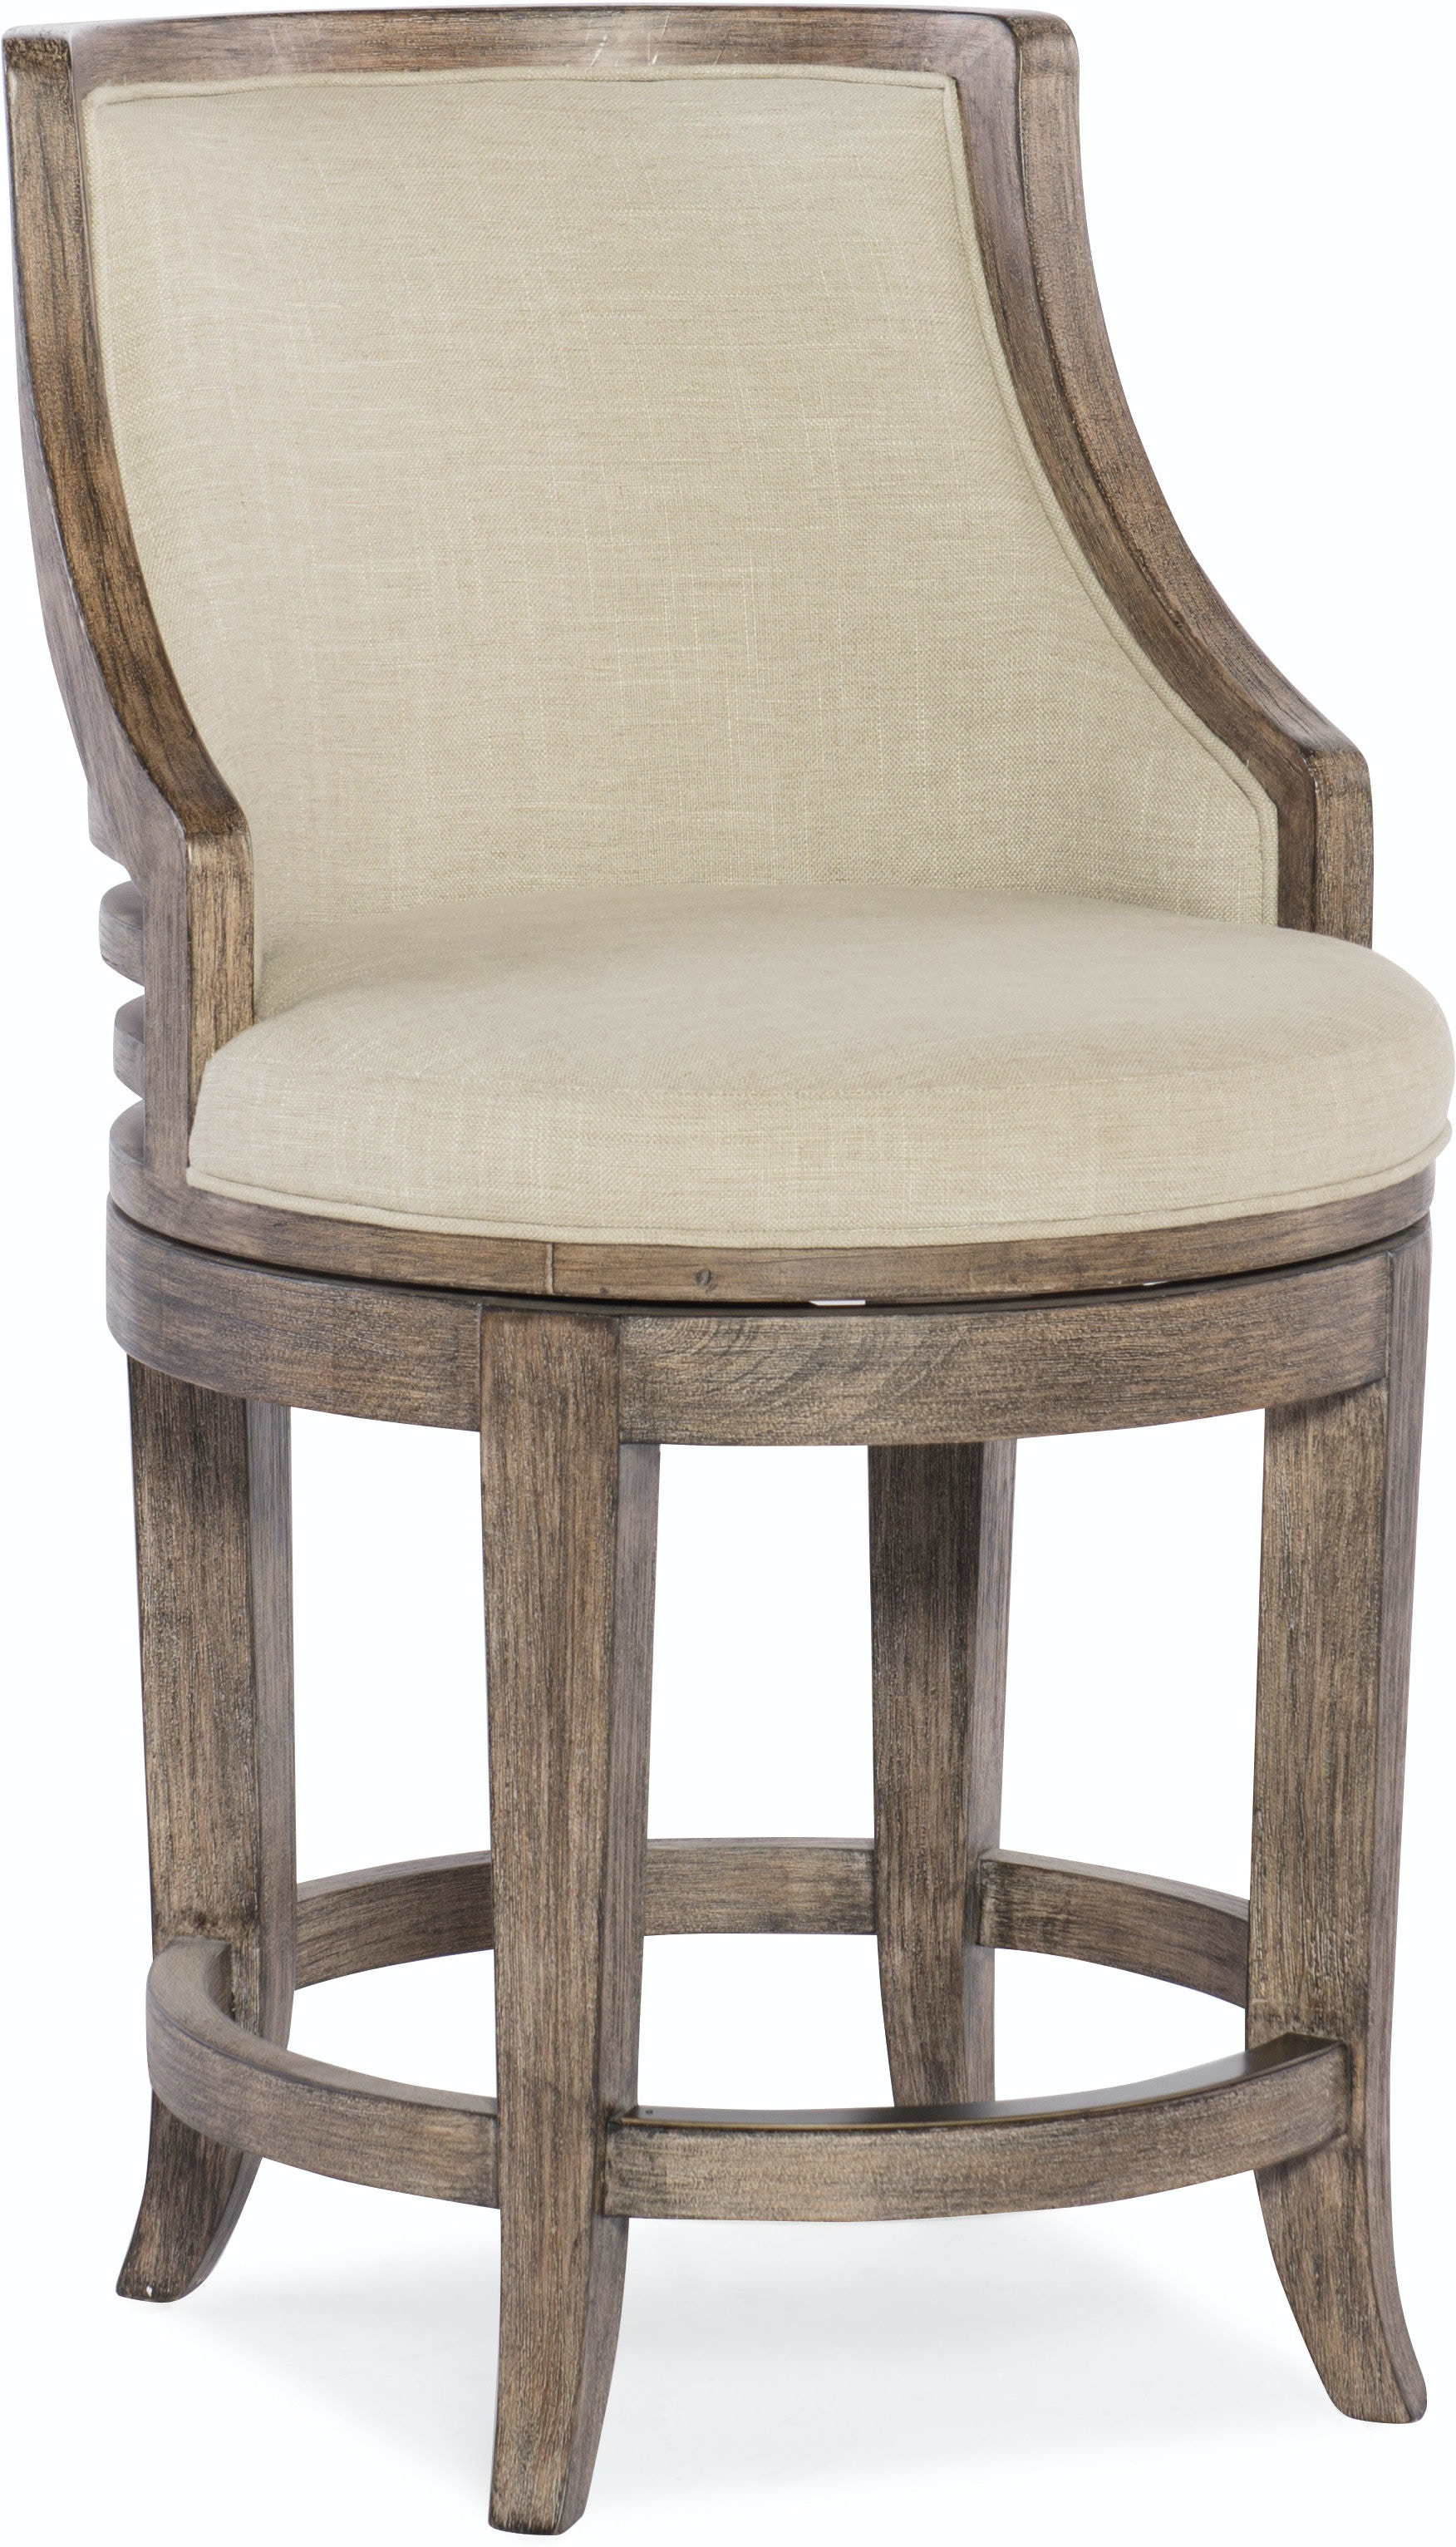 Fabulous Hooker Furniture Dining Room Lainey Transitional Counter Pdpeps Interior Chair Design Pdpepsorg